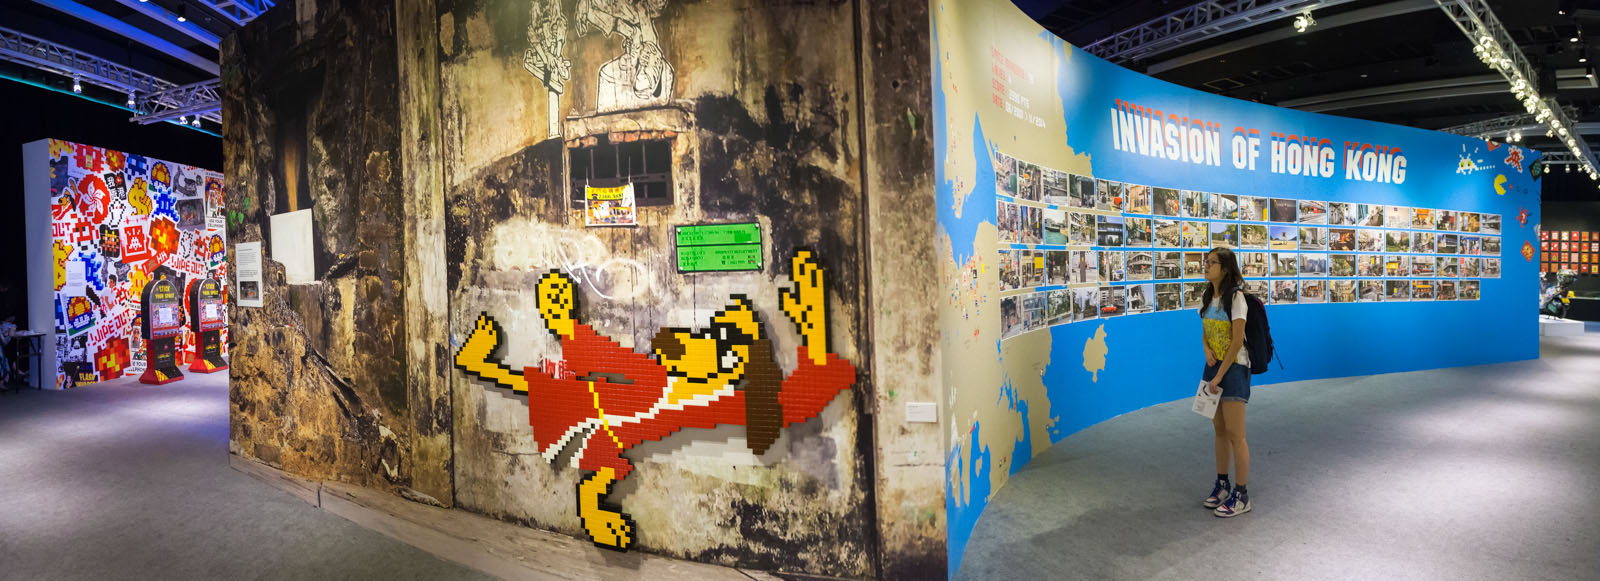 Wipe out, expo d'Invader à Hong Kong - Mai 2015